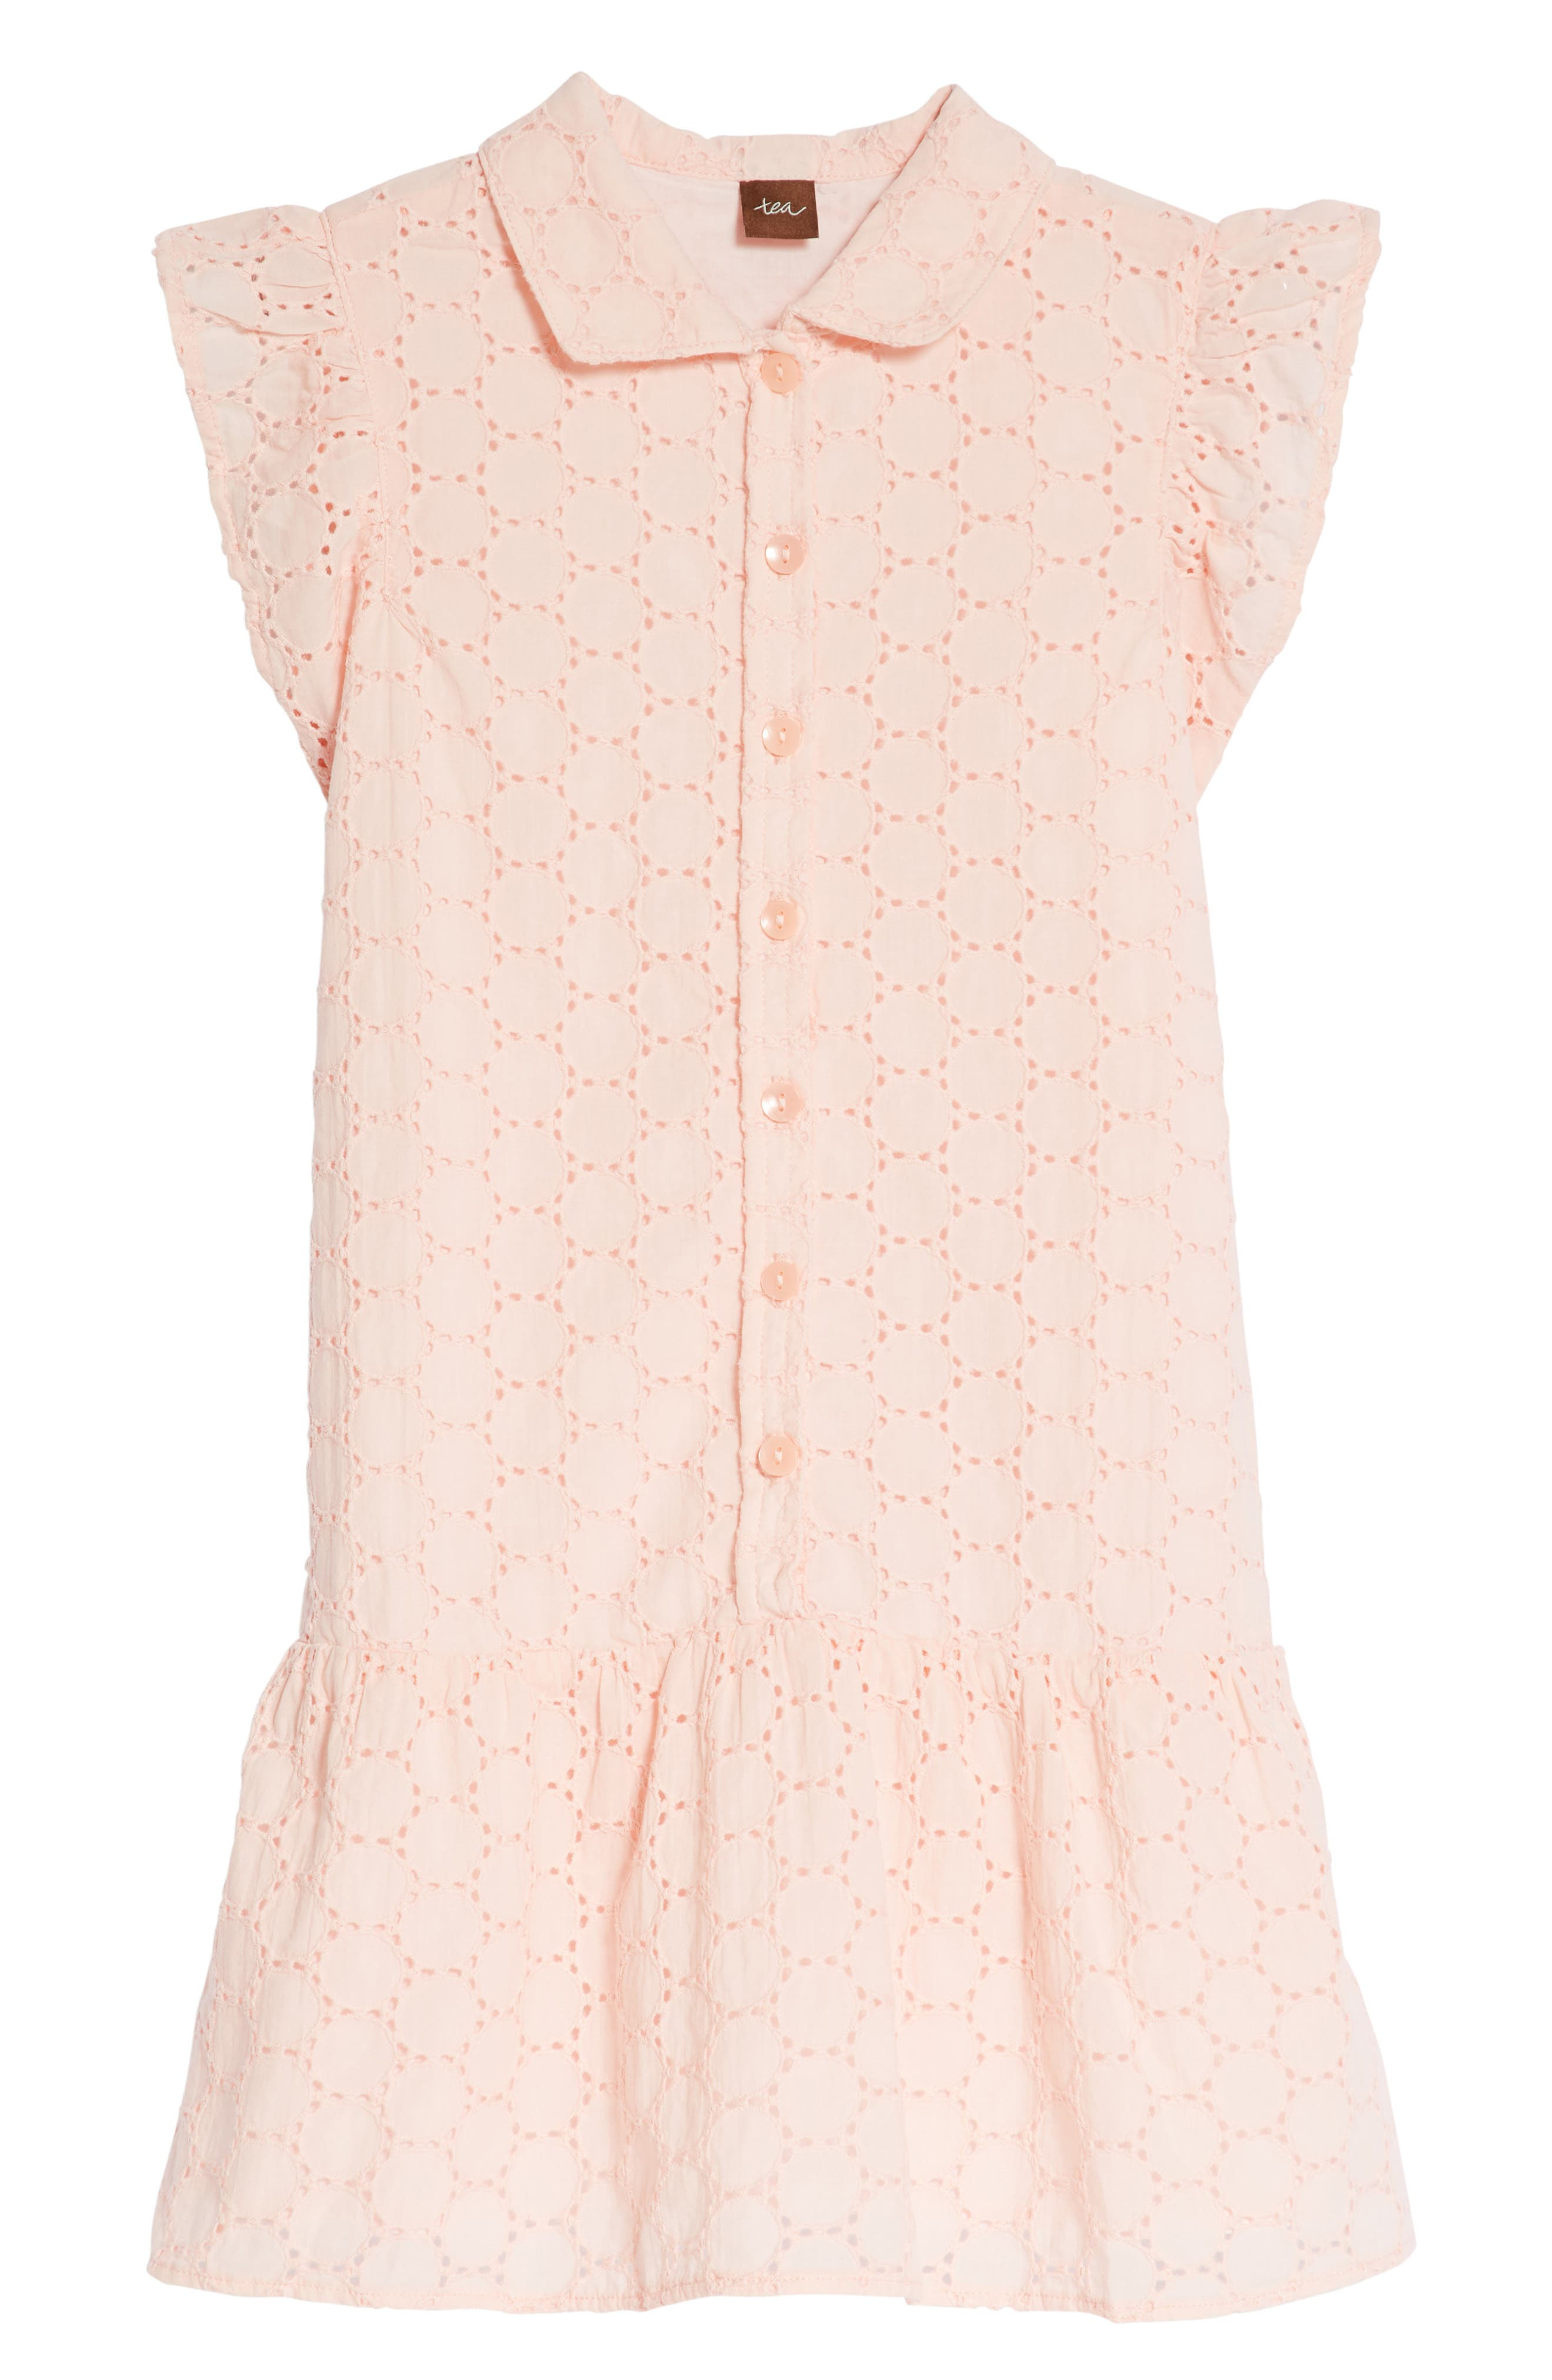 Eyelet Woven Dress,                             Main thumbnail 1, color,                             Pink Gloss